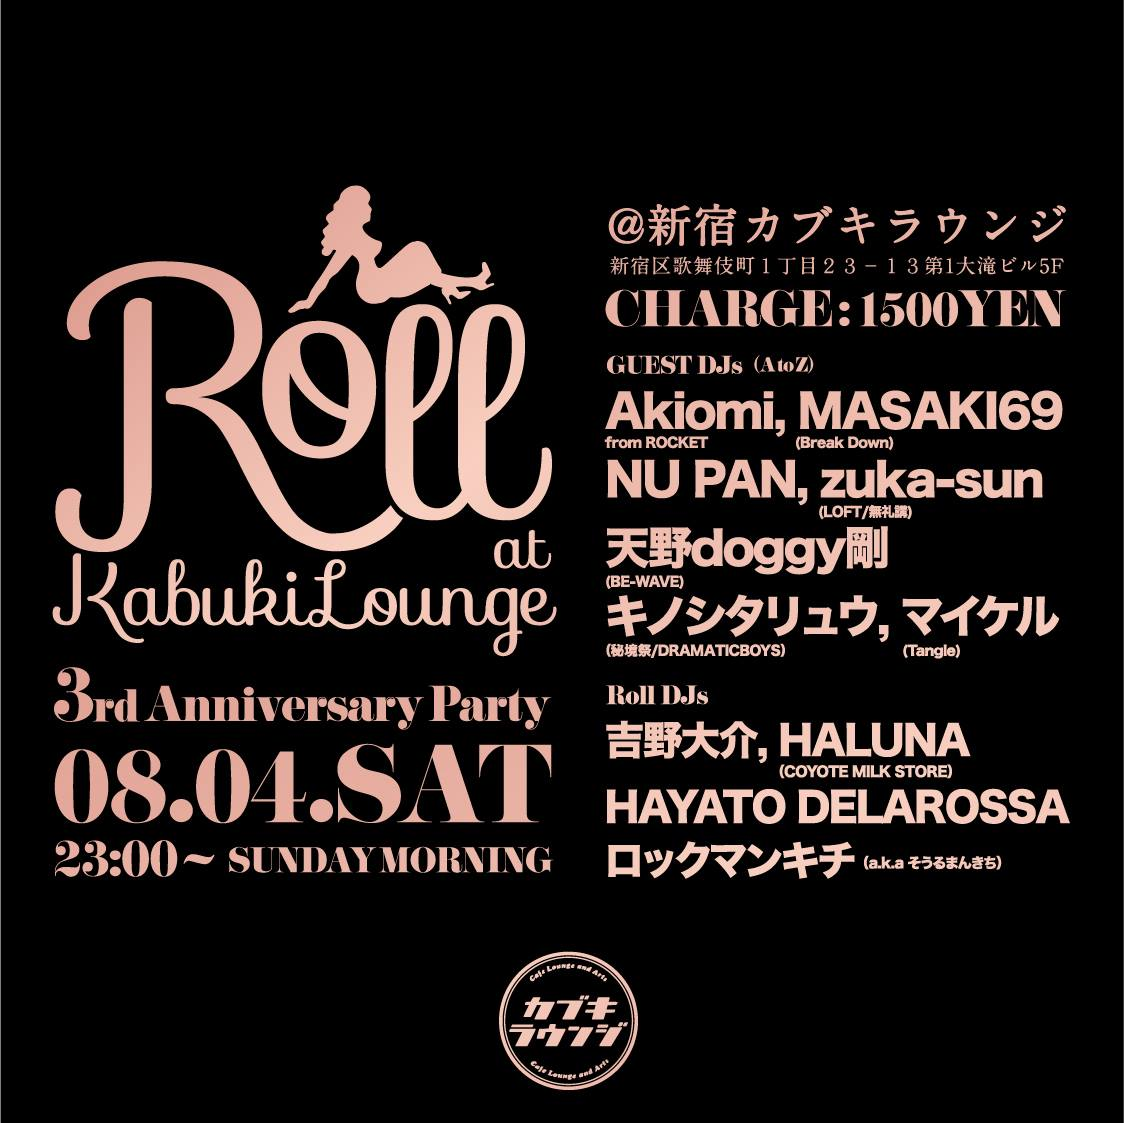 8/4(土) Roll 3rd Anniversary Party 23:00-sundaymorning